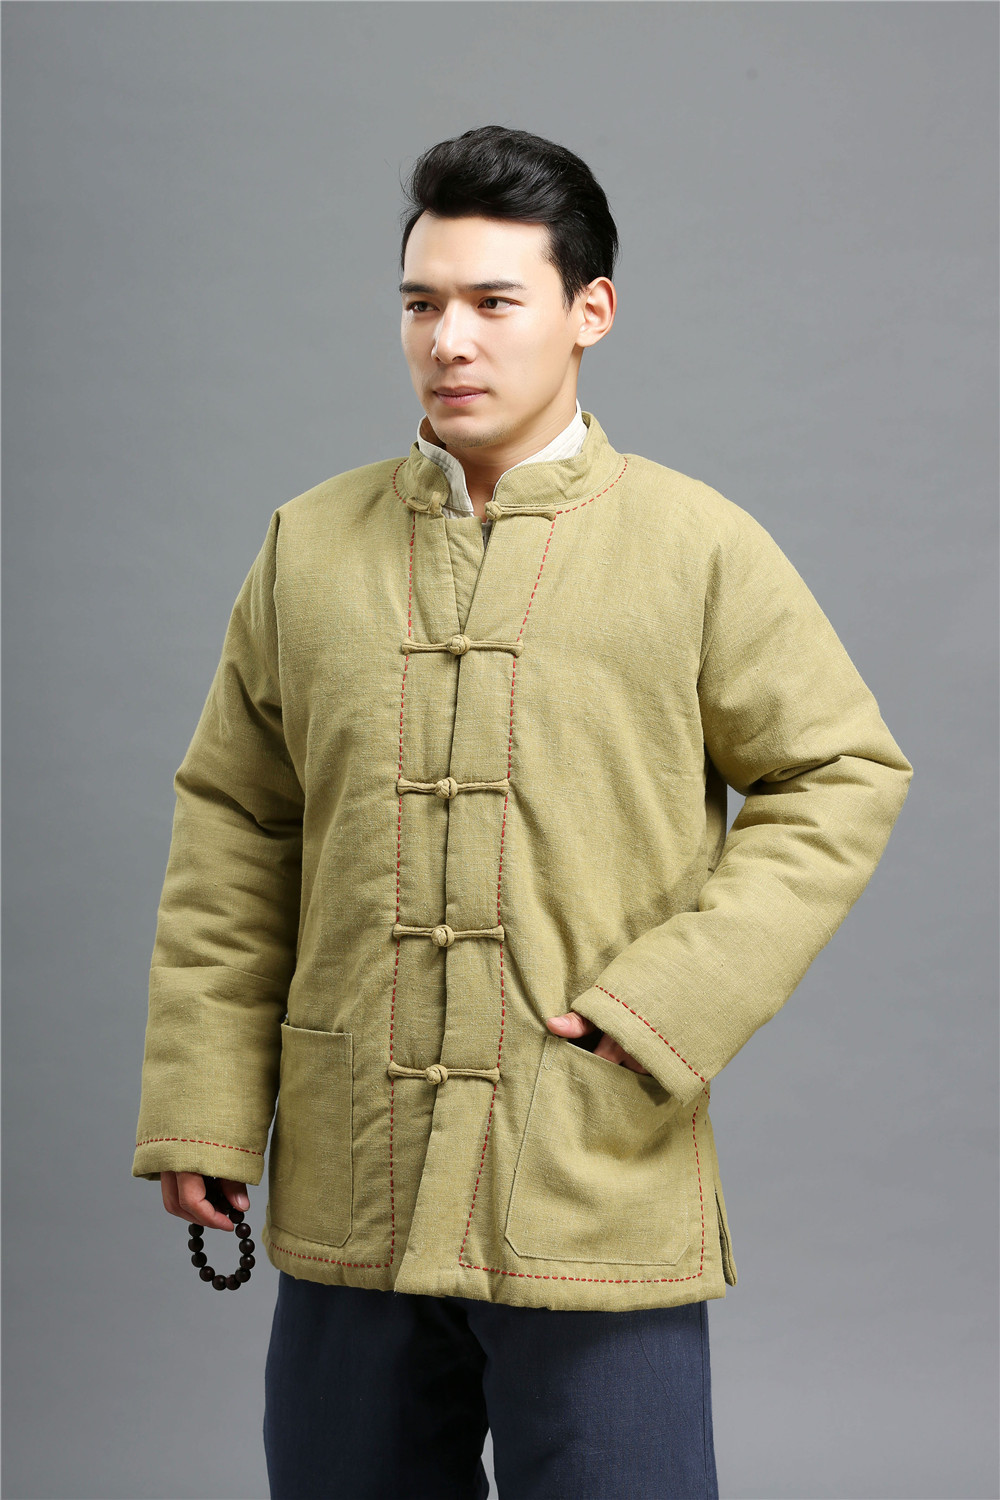 2015 Autumn winter 2 colors vintage cotton linen men's coat Cotton-padded clothes embroidery thread Outer Parkas Jacket 2015 autumn winter 3 colors cotton linen men s coat vintage cotton padded clothes outer parkas two sided jacket